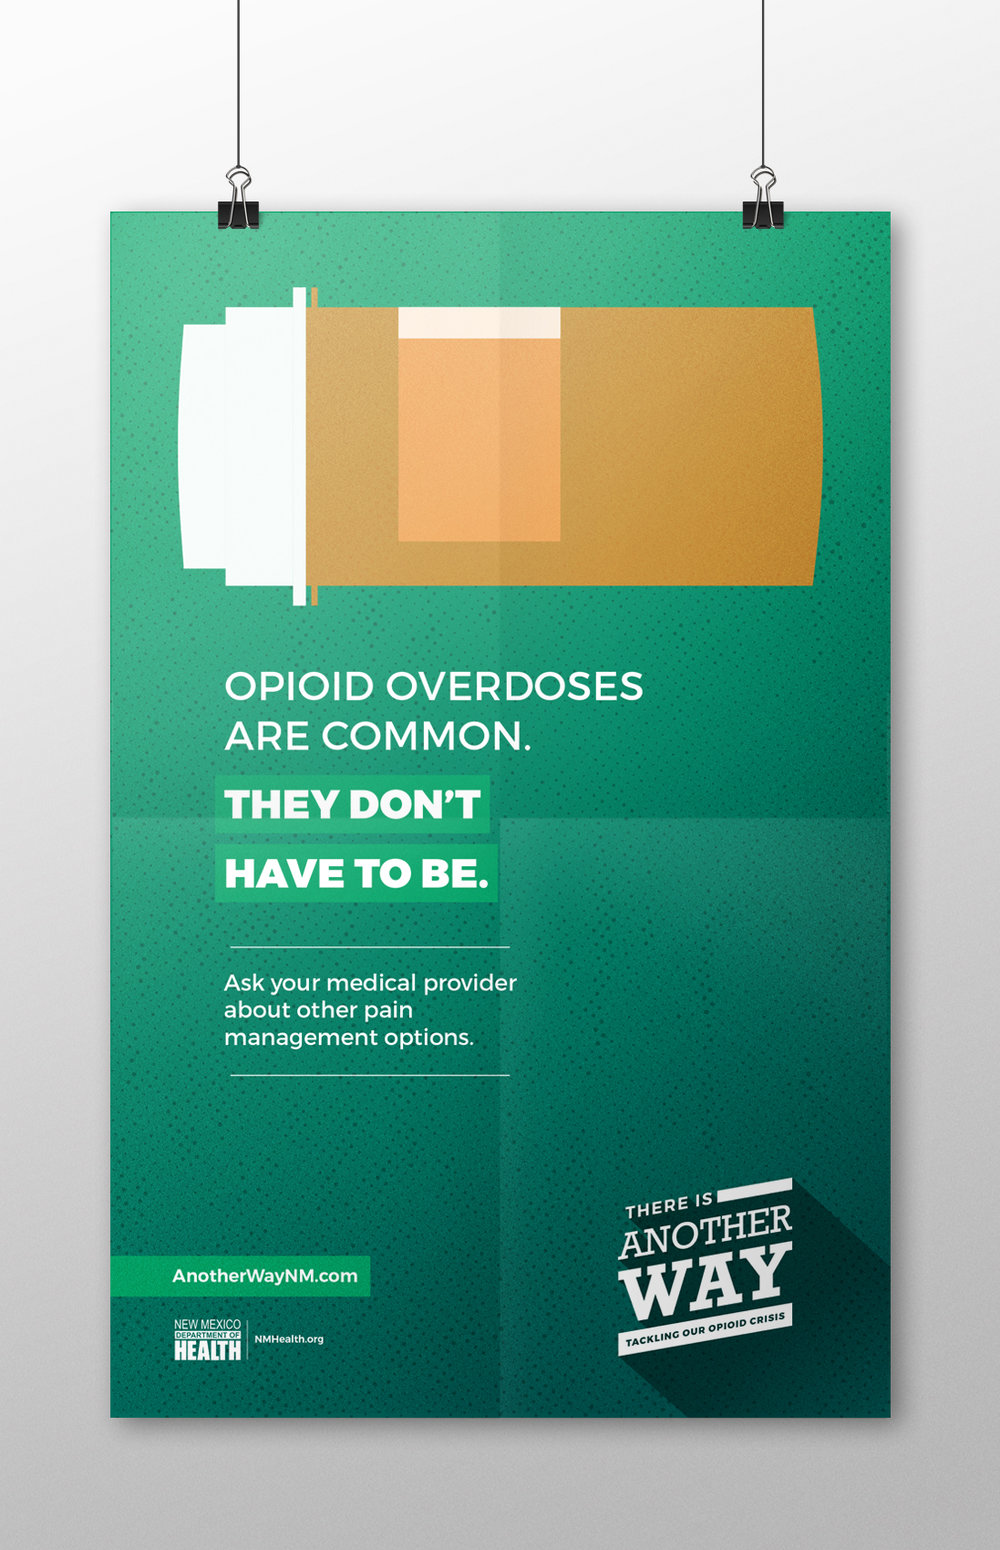 DOH AW Poster Mockup green bottle.jpg